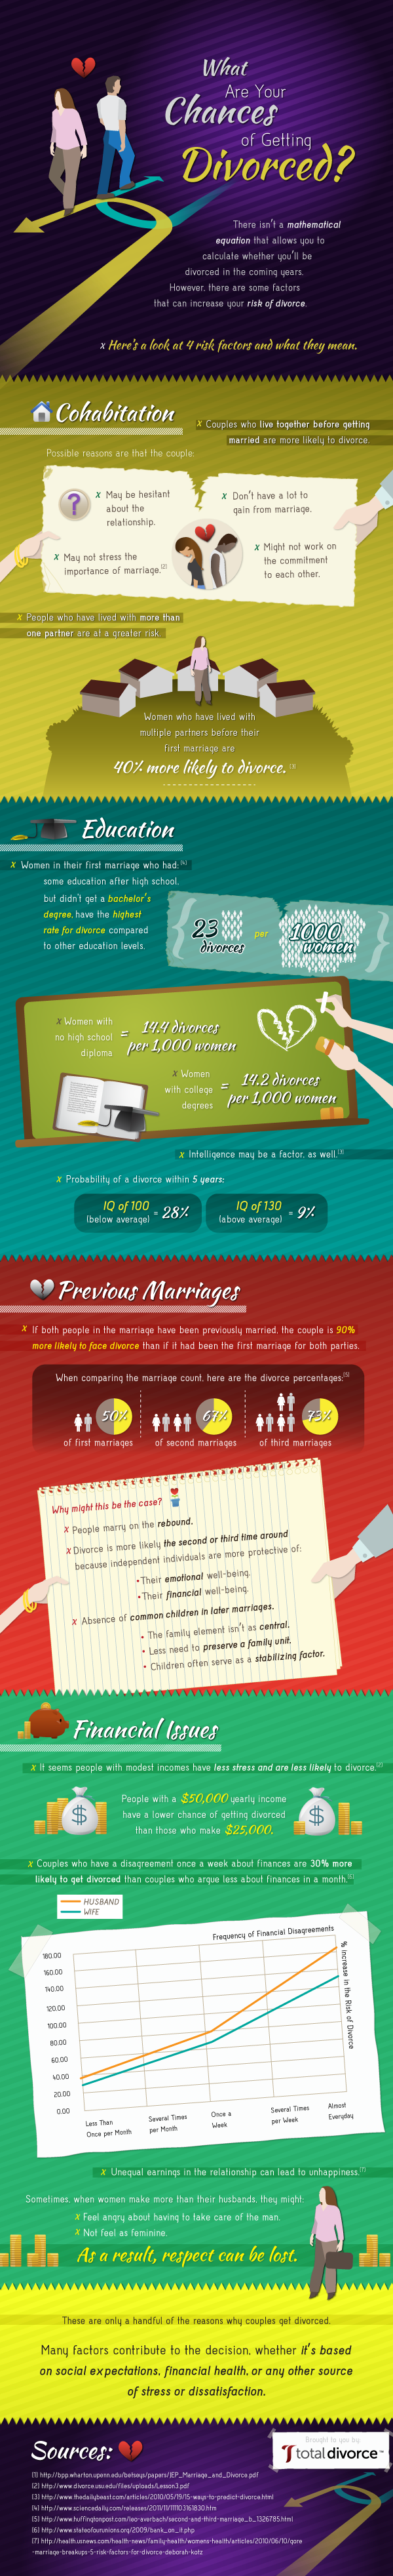 Risk Factors that leads to Divorce